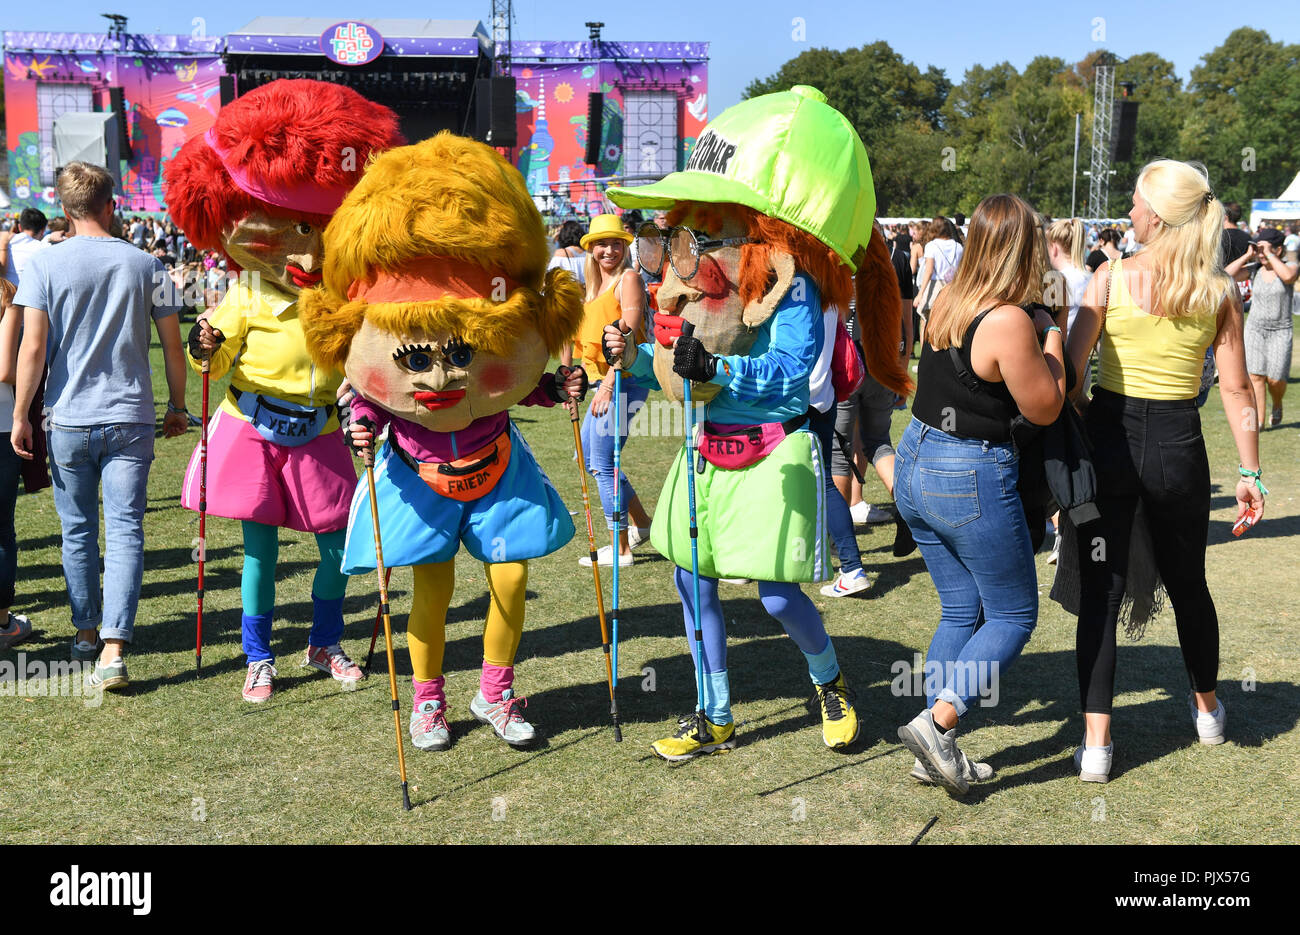 Berlin, Germany. 09th Sep, 2018. 09.09.2018, Berlin: Colourful figures are presented at the two-day music festival Lollapalooza. Credit: Jens Kalaene/dpa-Zentralbild/dpa/Alamy Live News - Stock Image